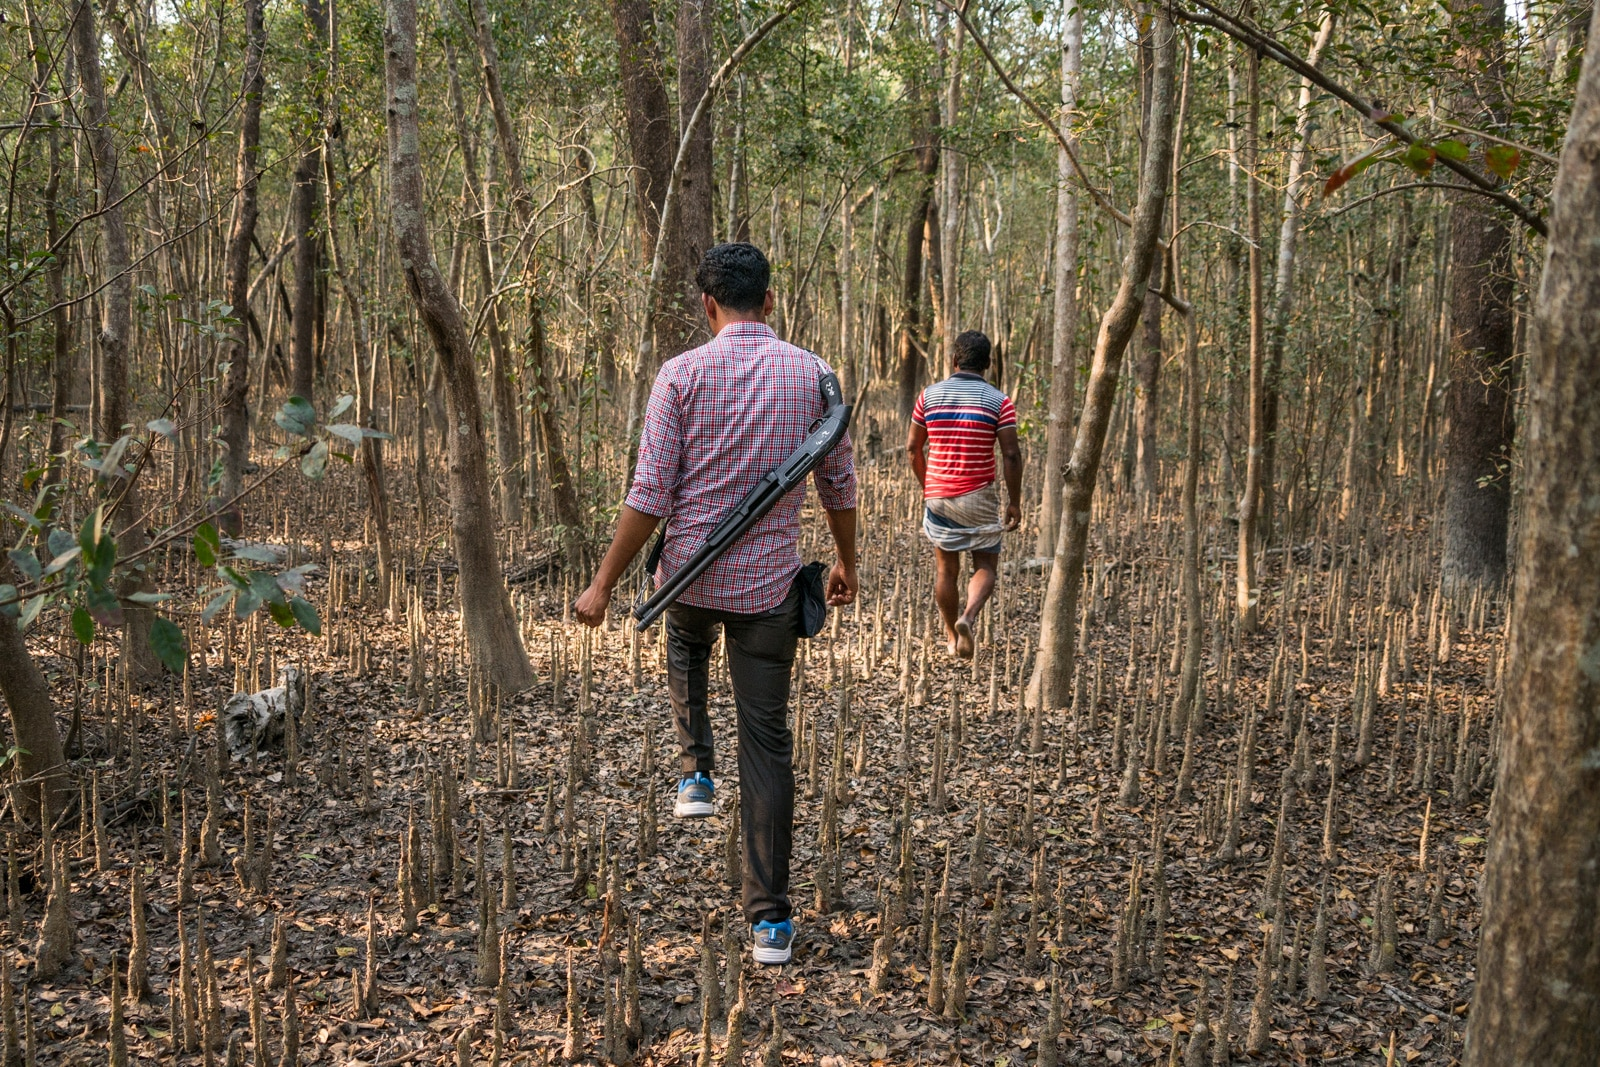 Solo female travel in Bangladesh - Guard with gun walking in Nijhum Dwip National Park - Lost With Purpose travel blog